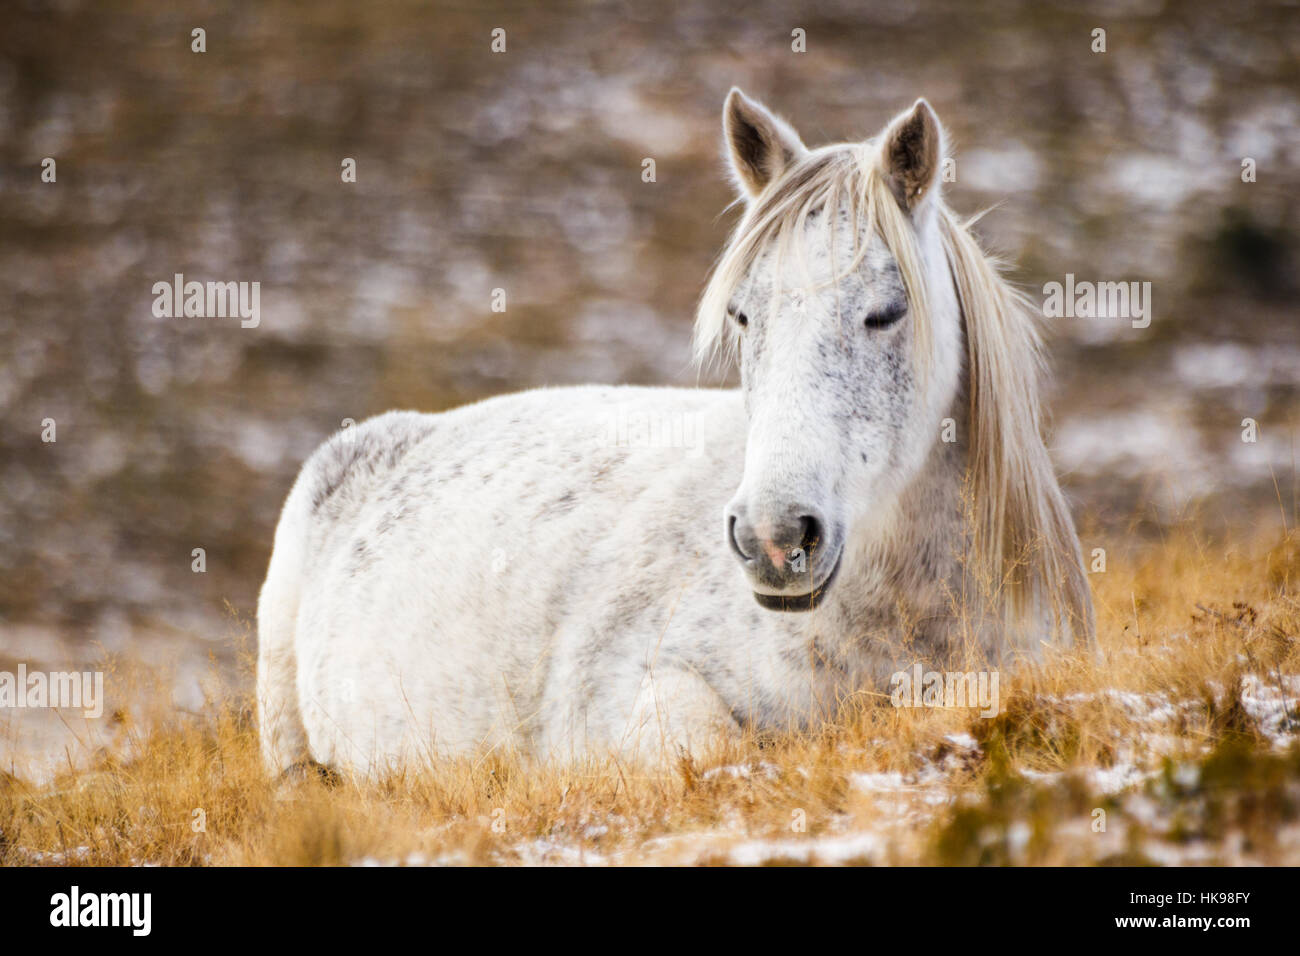 Wild white mustang horse, resting in a snowy field - Stock Image